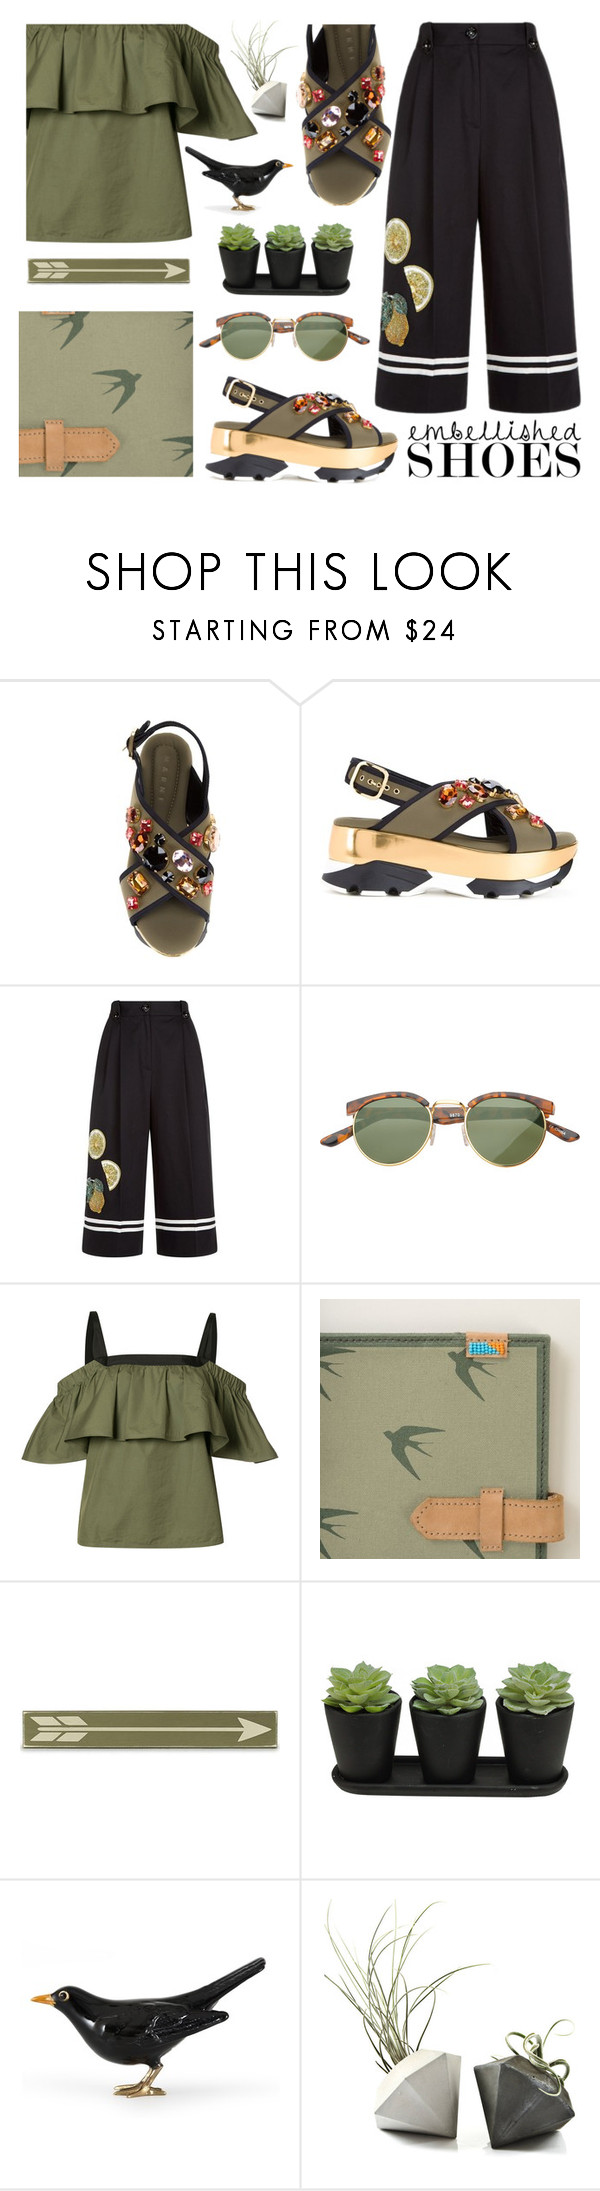 """""""Embellished Shoes"""" by bysc ❤ liked on Polyvore featuring Marni, Dolce&Gabbana, SW Global, Grey by Jason Wu and Home Decorators Collection"""